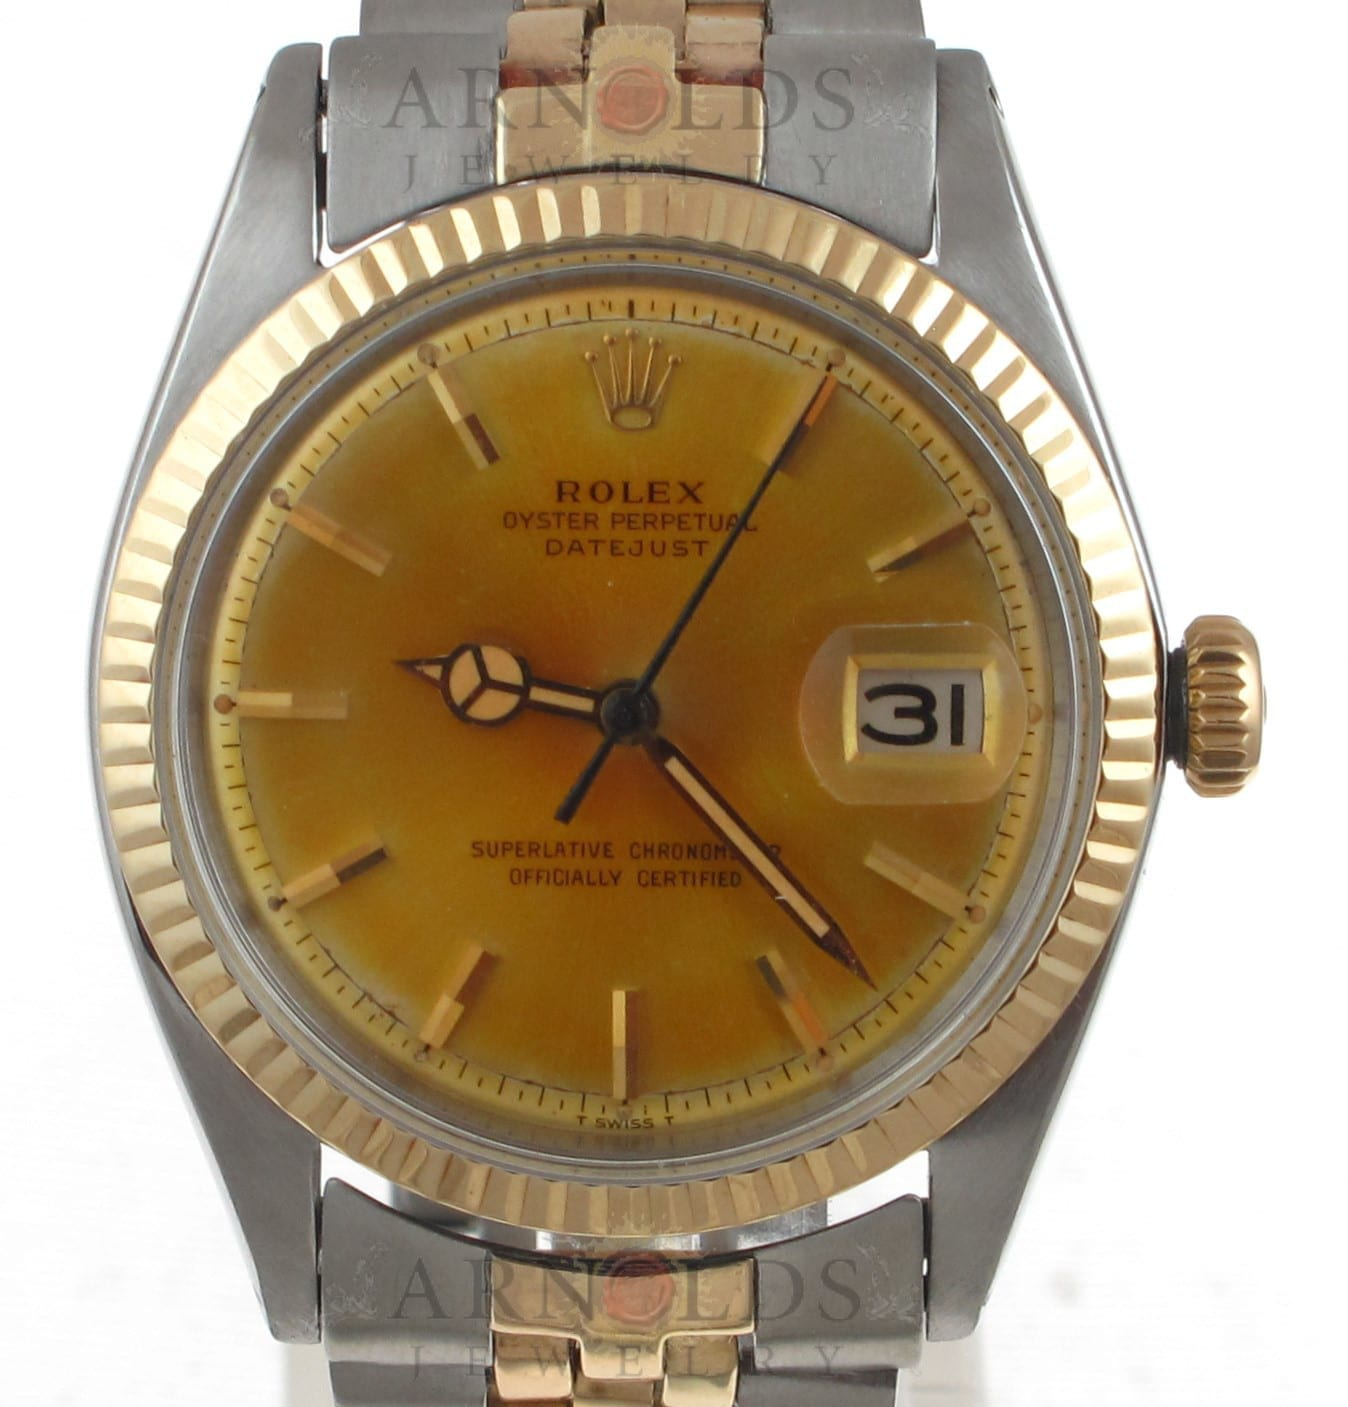 e646f59a400 Previous; Next. 1; 2. Previous; Next. Pre-Owned 1964 Vintage Rolex Datejust  Watch Two Tone With Champagne Dial Fluted Bezel With Jubilee Band ...